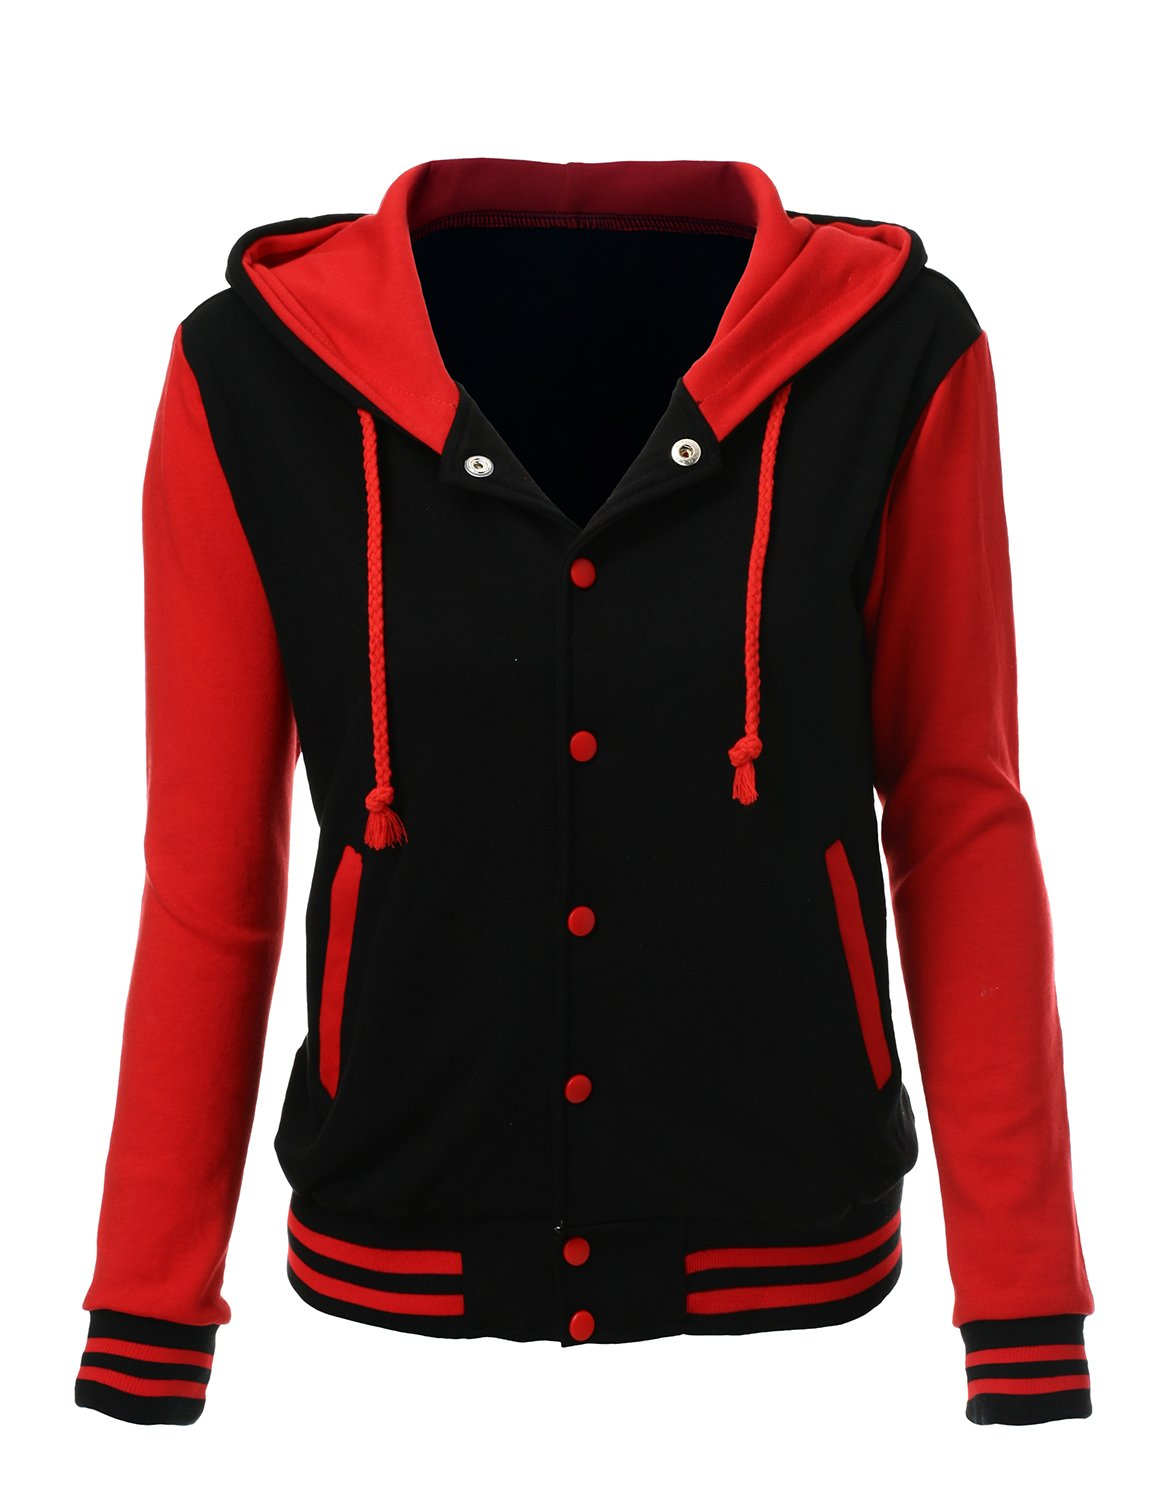 Stylish Color Contrast Long Sleeves Hoodie Varsity Jacket Black Red 2XL